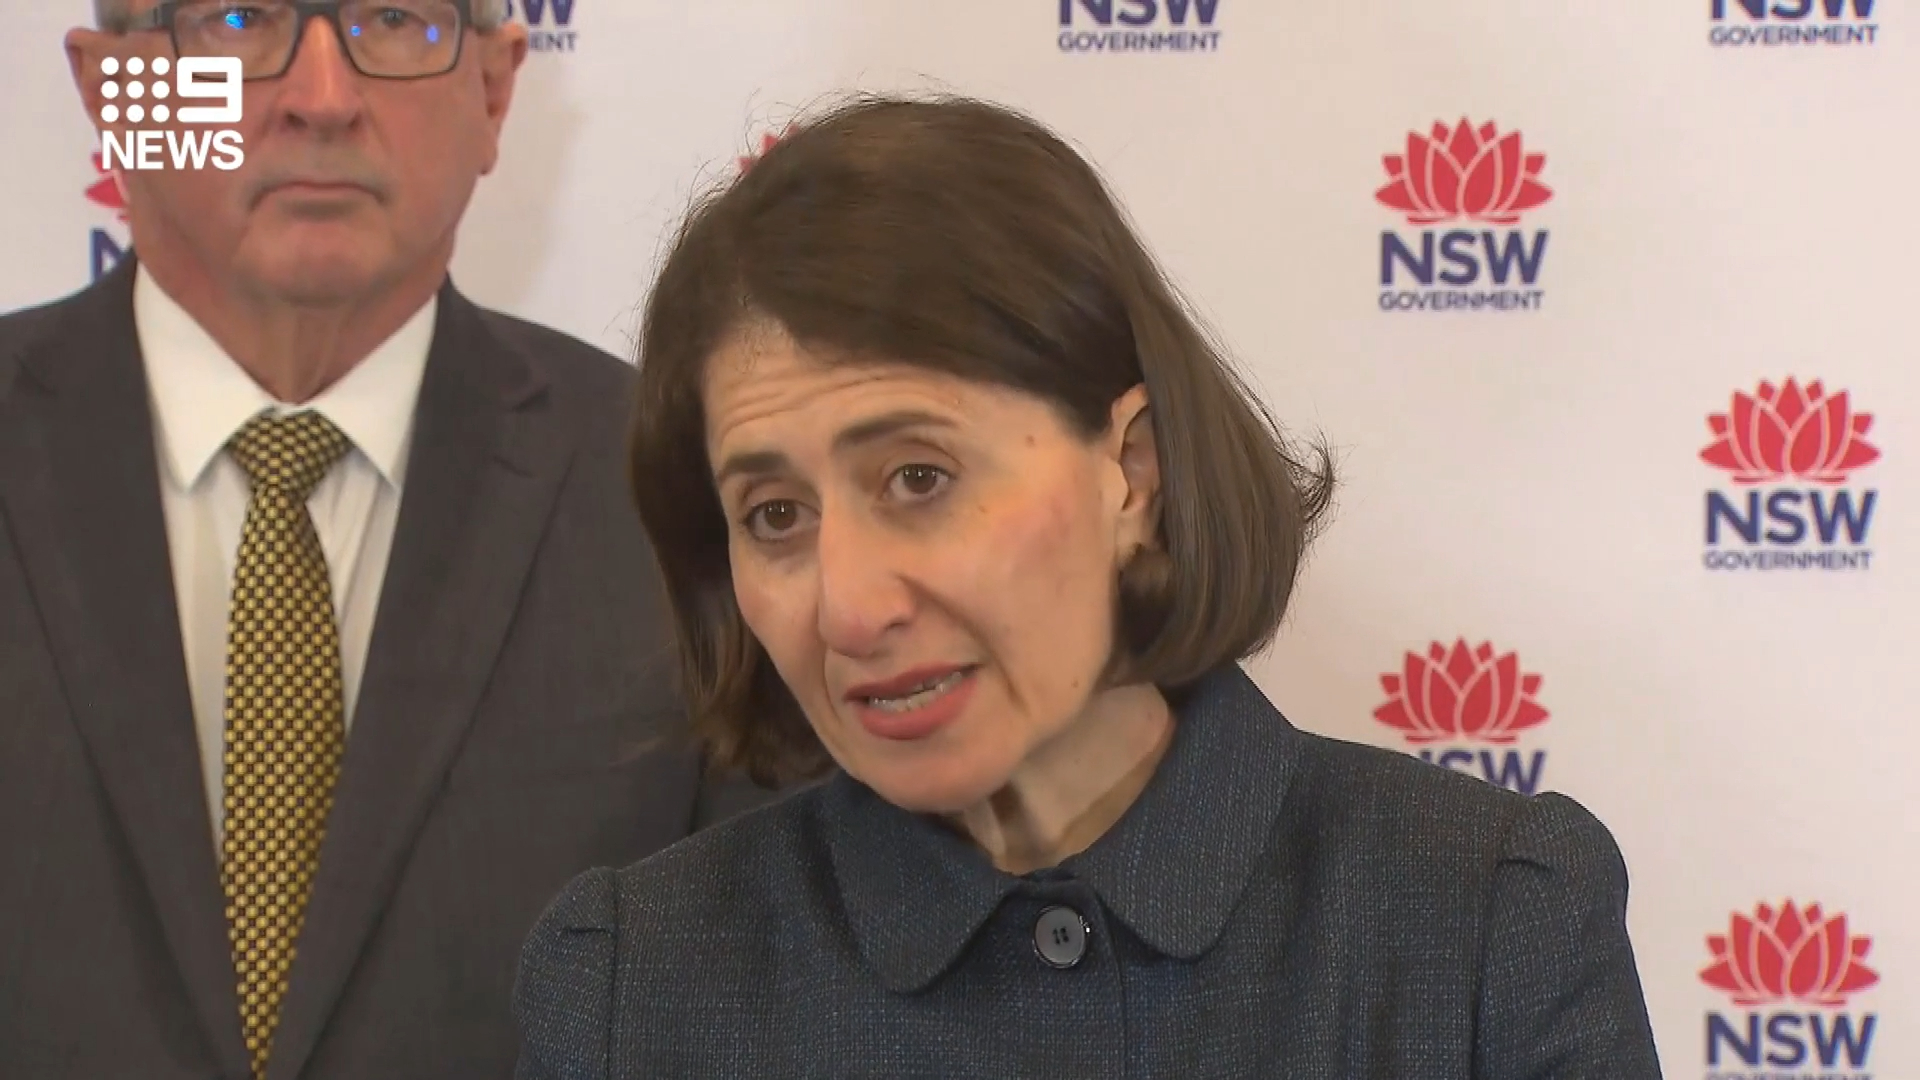 NSW Premier extends mask rules